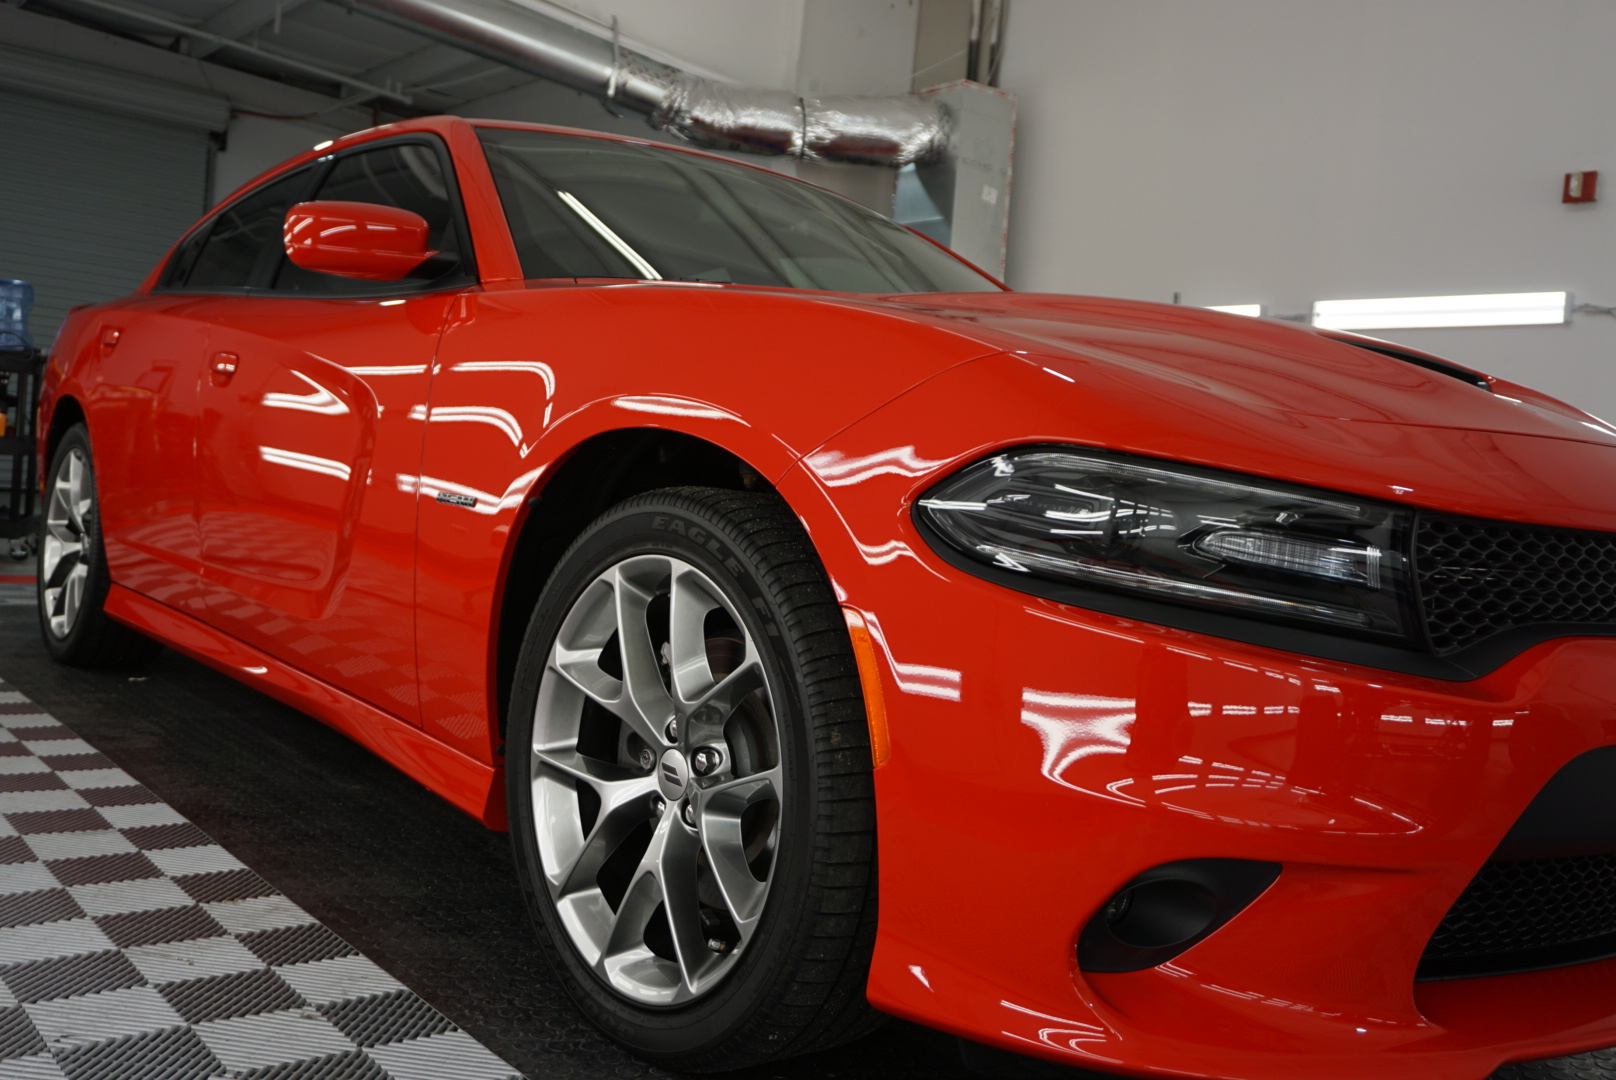 Photo of a Ceramic Coating of a 2018 Dodge Charger